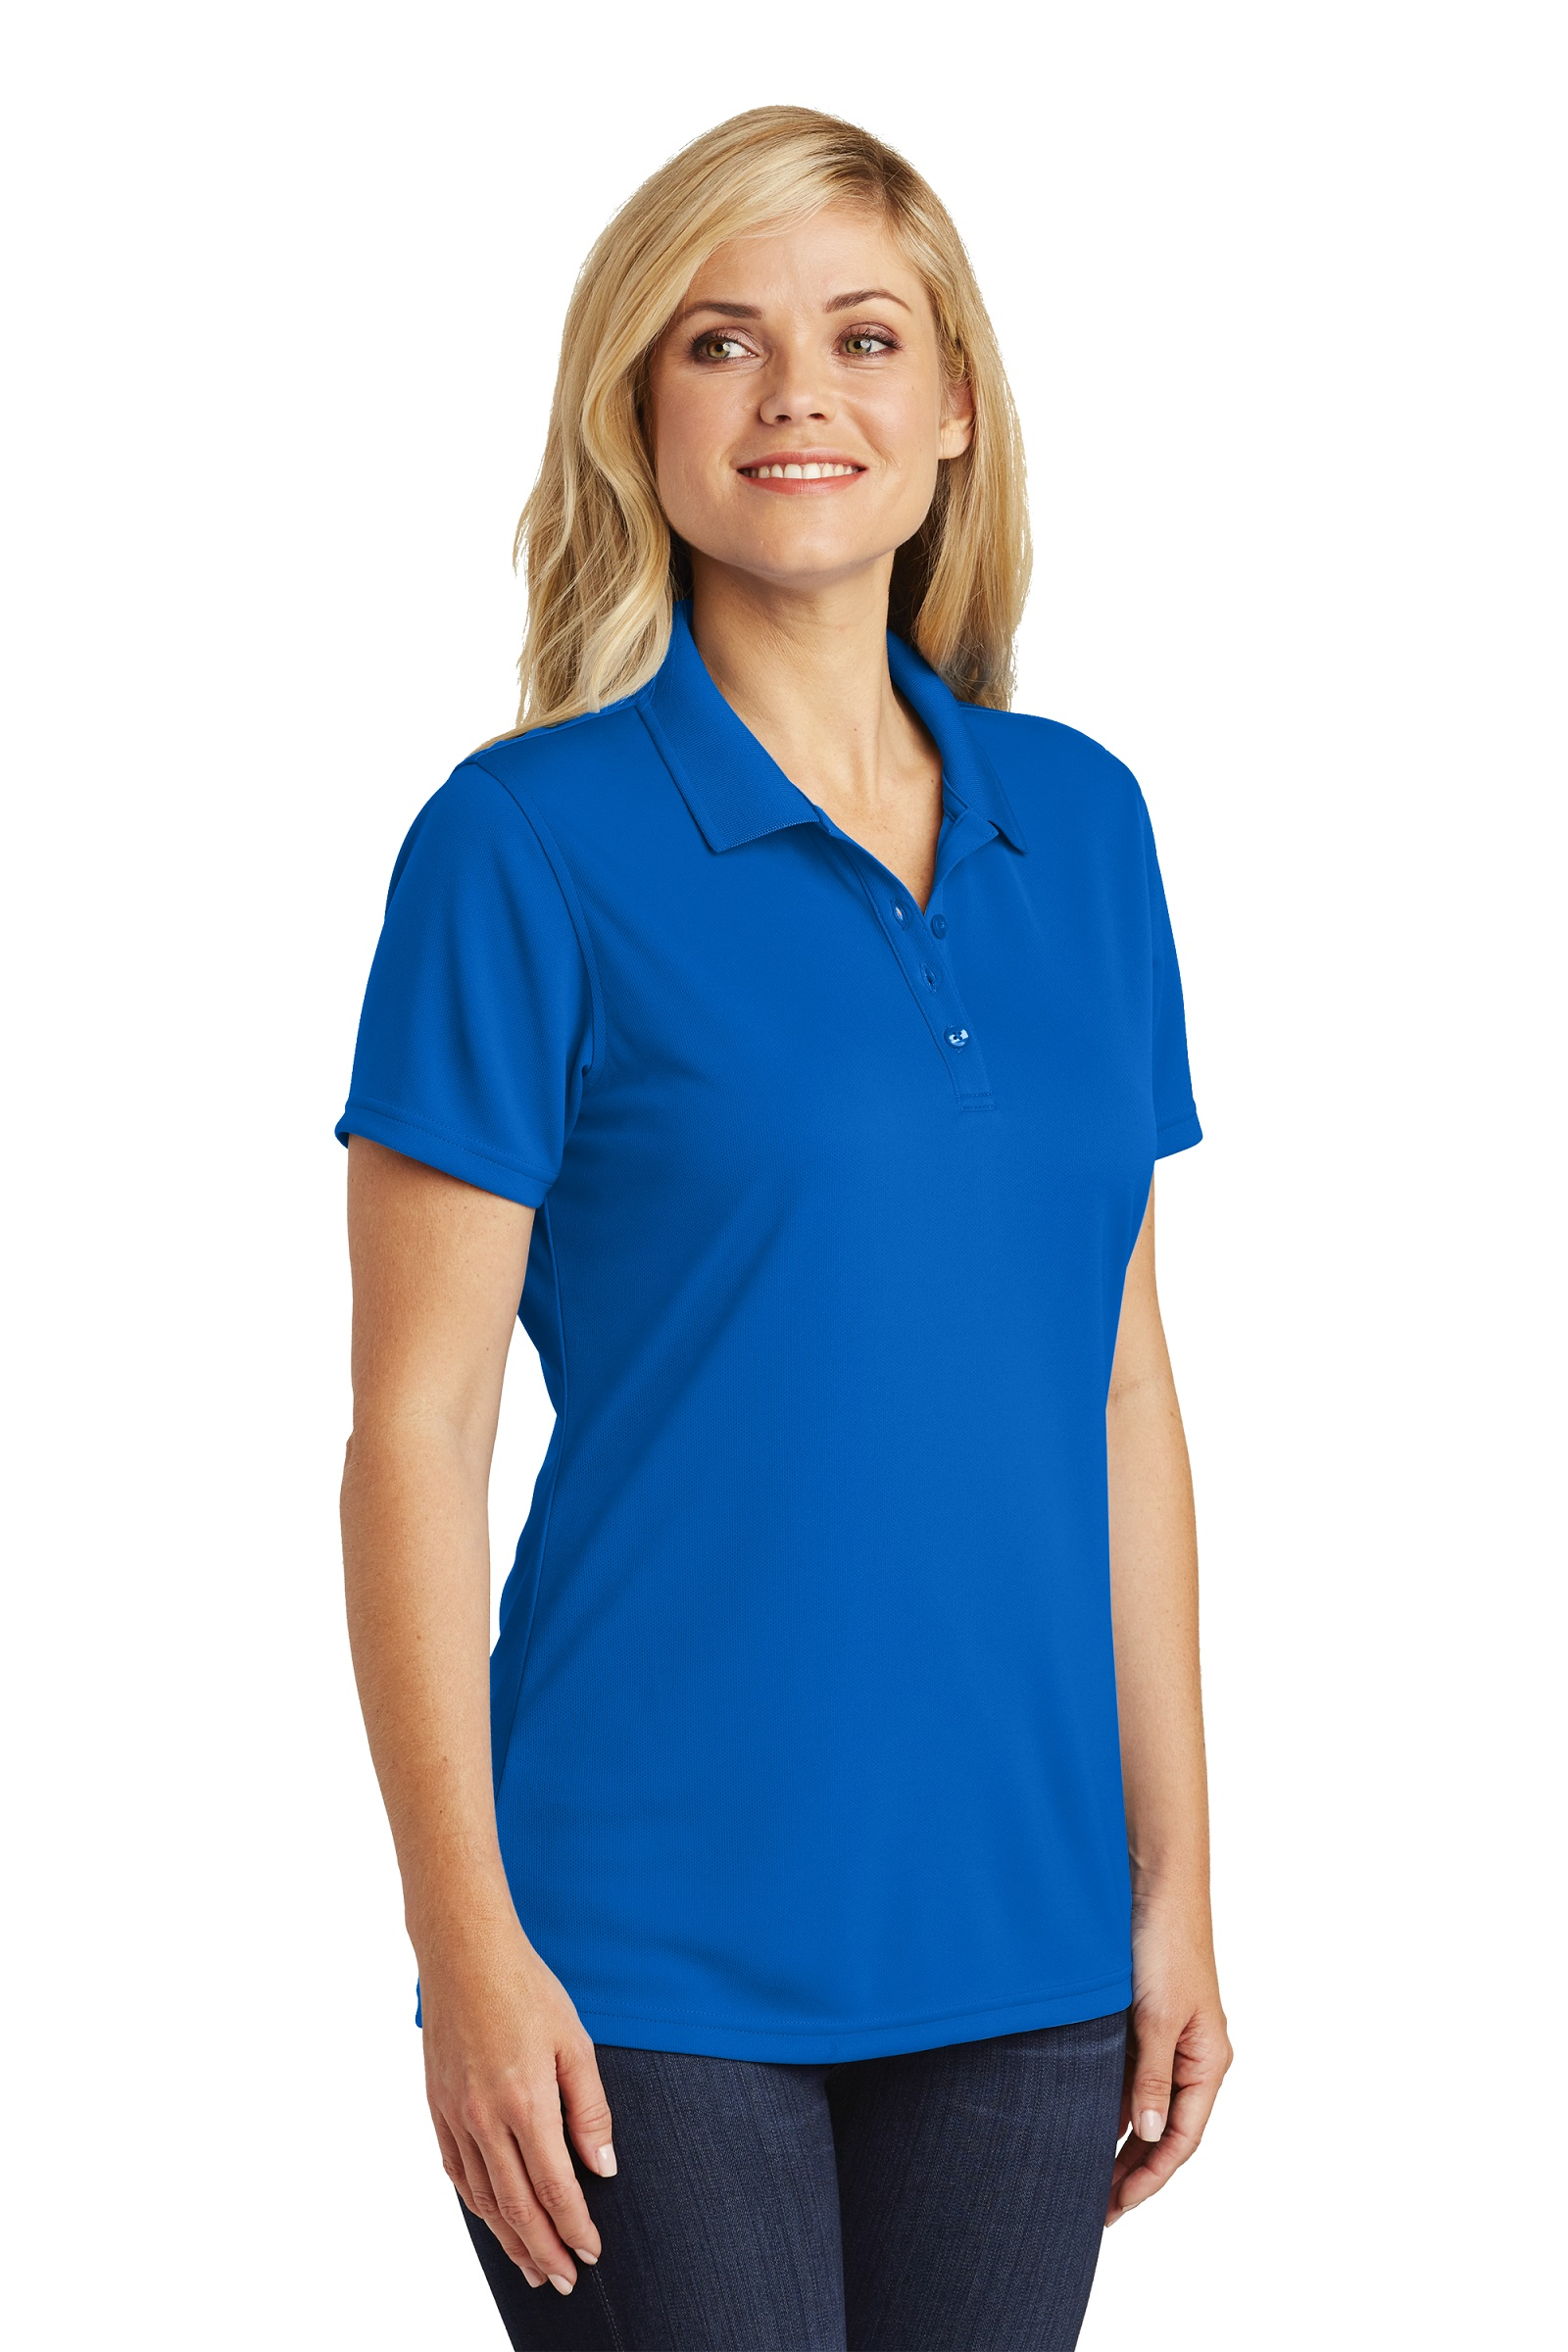 Port Authority Embroidered Women's Dry Zone UV Micro-Mesh Polo